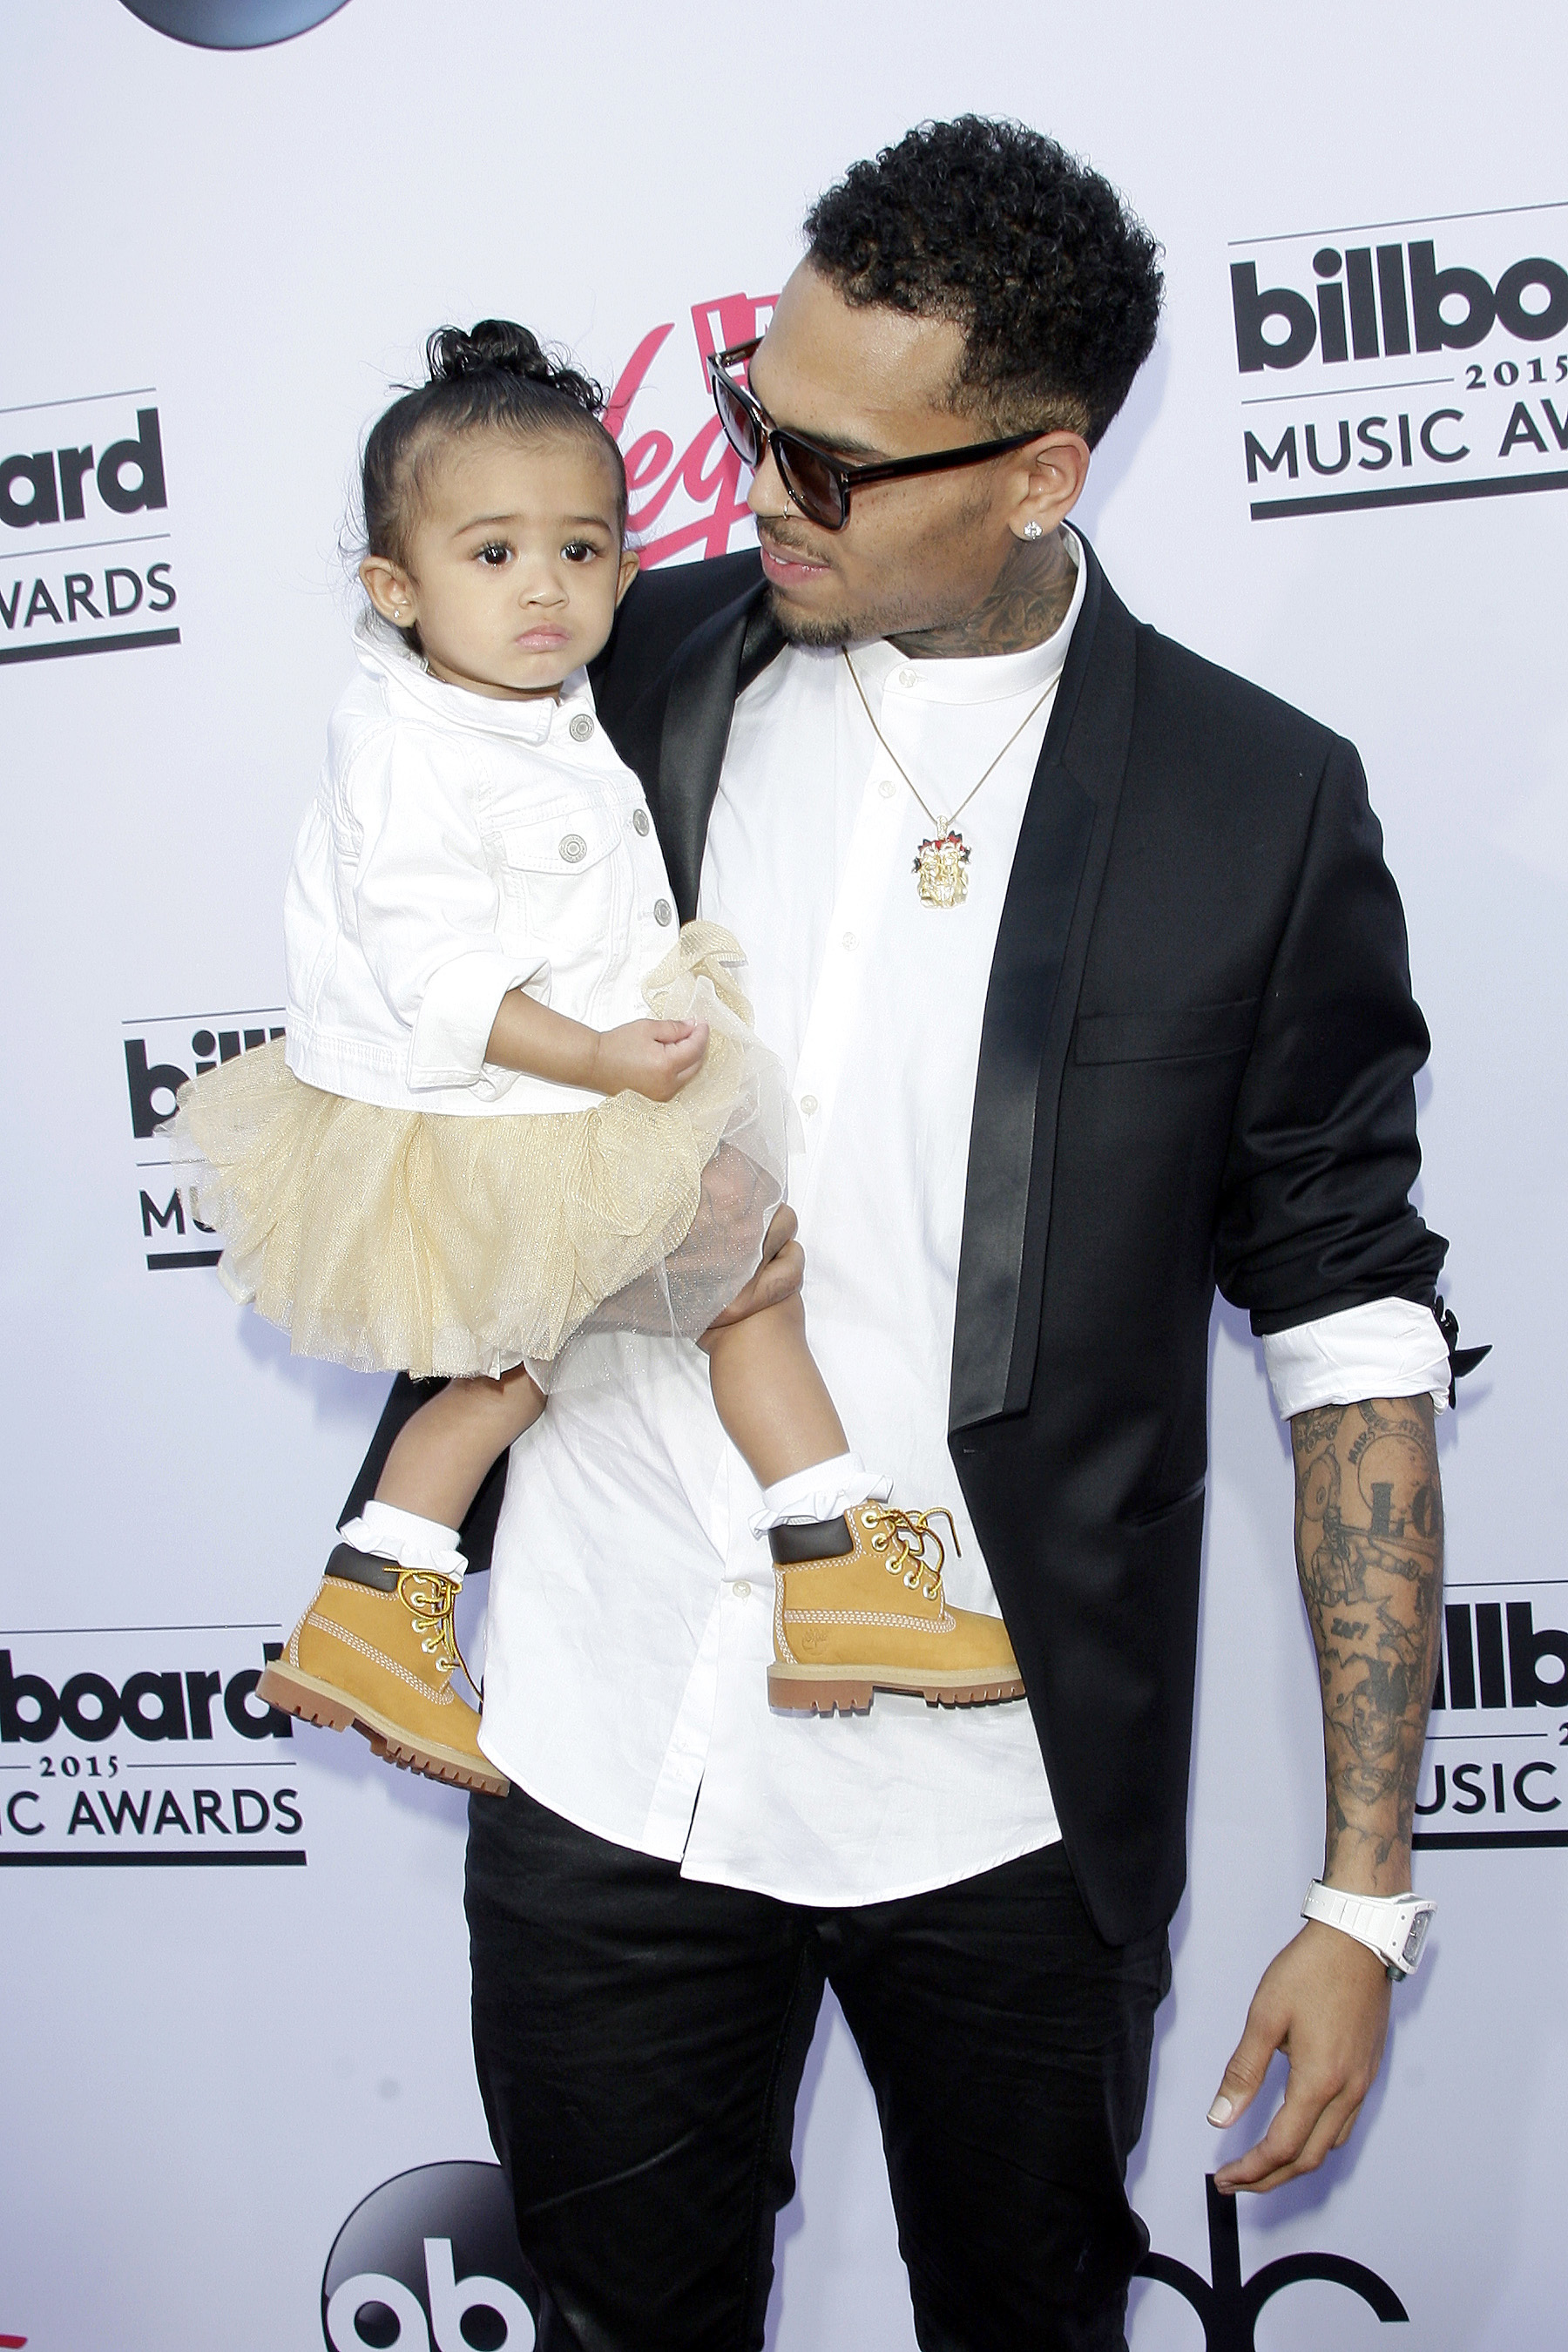 Chris Brown plunked down $30k for his toddler's birthday party